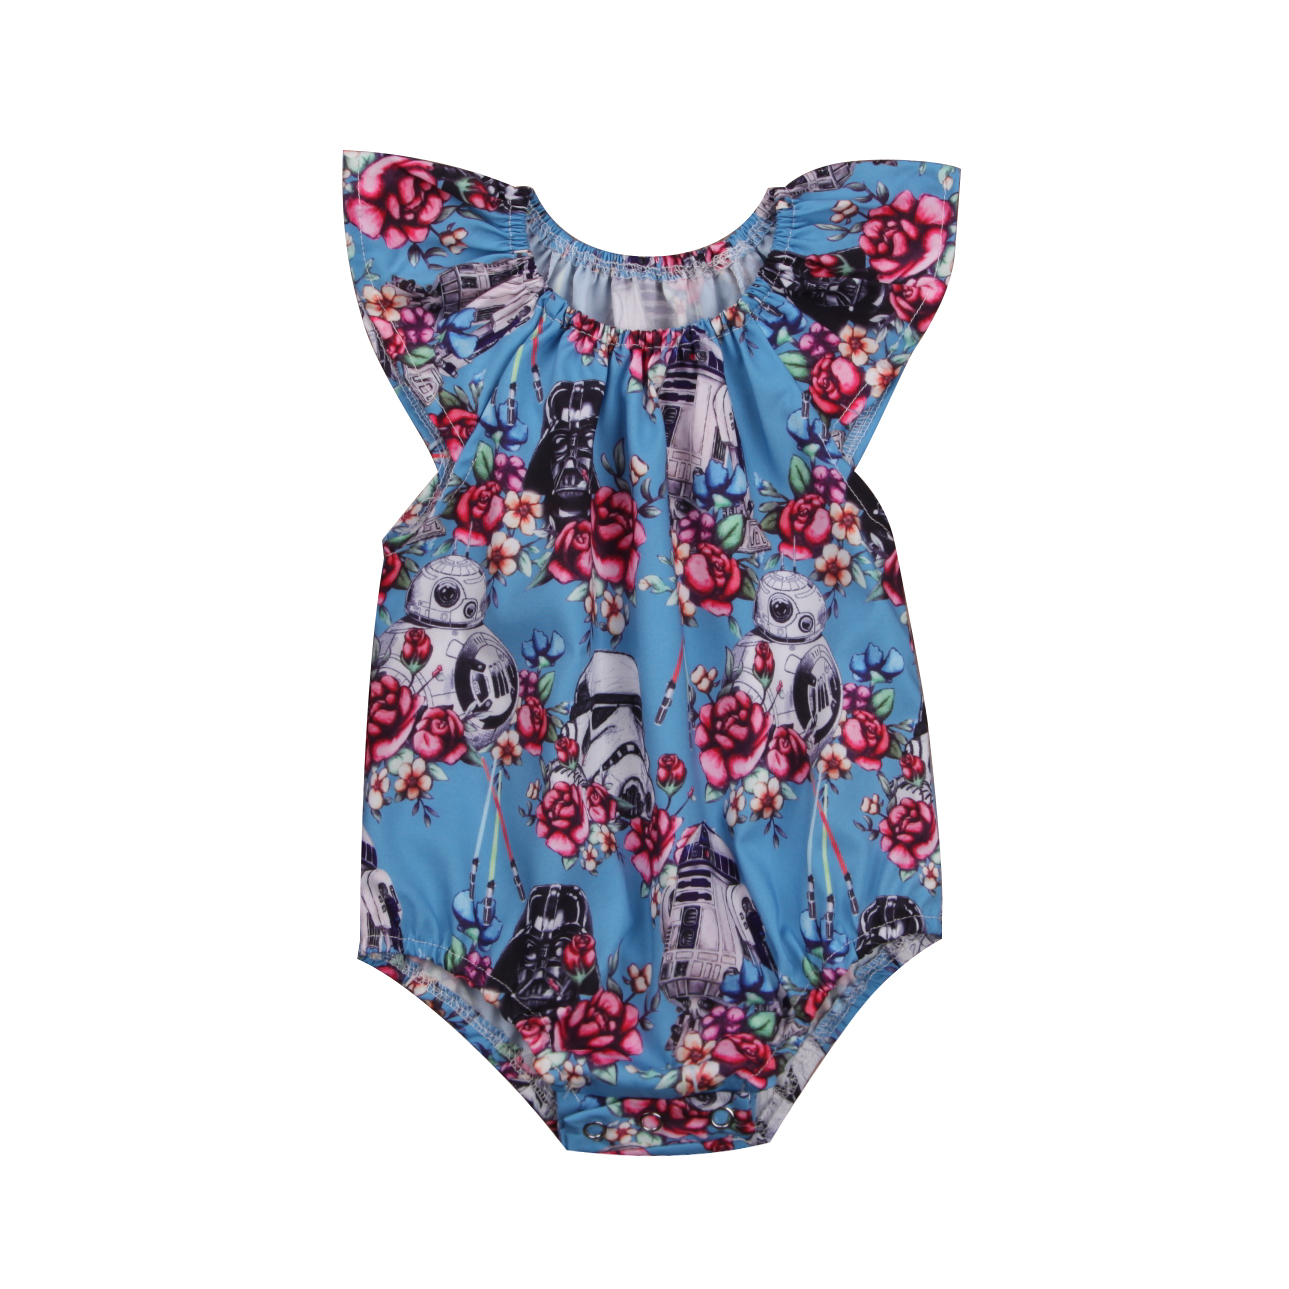 Baby Girls Star Wars Flower Romper Newborn Ruffles Jumpsuit Outfits Clothes